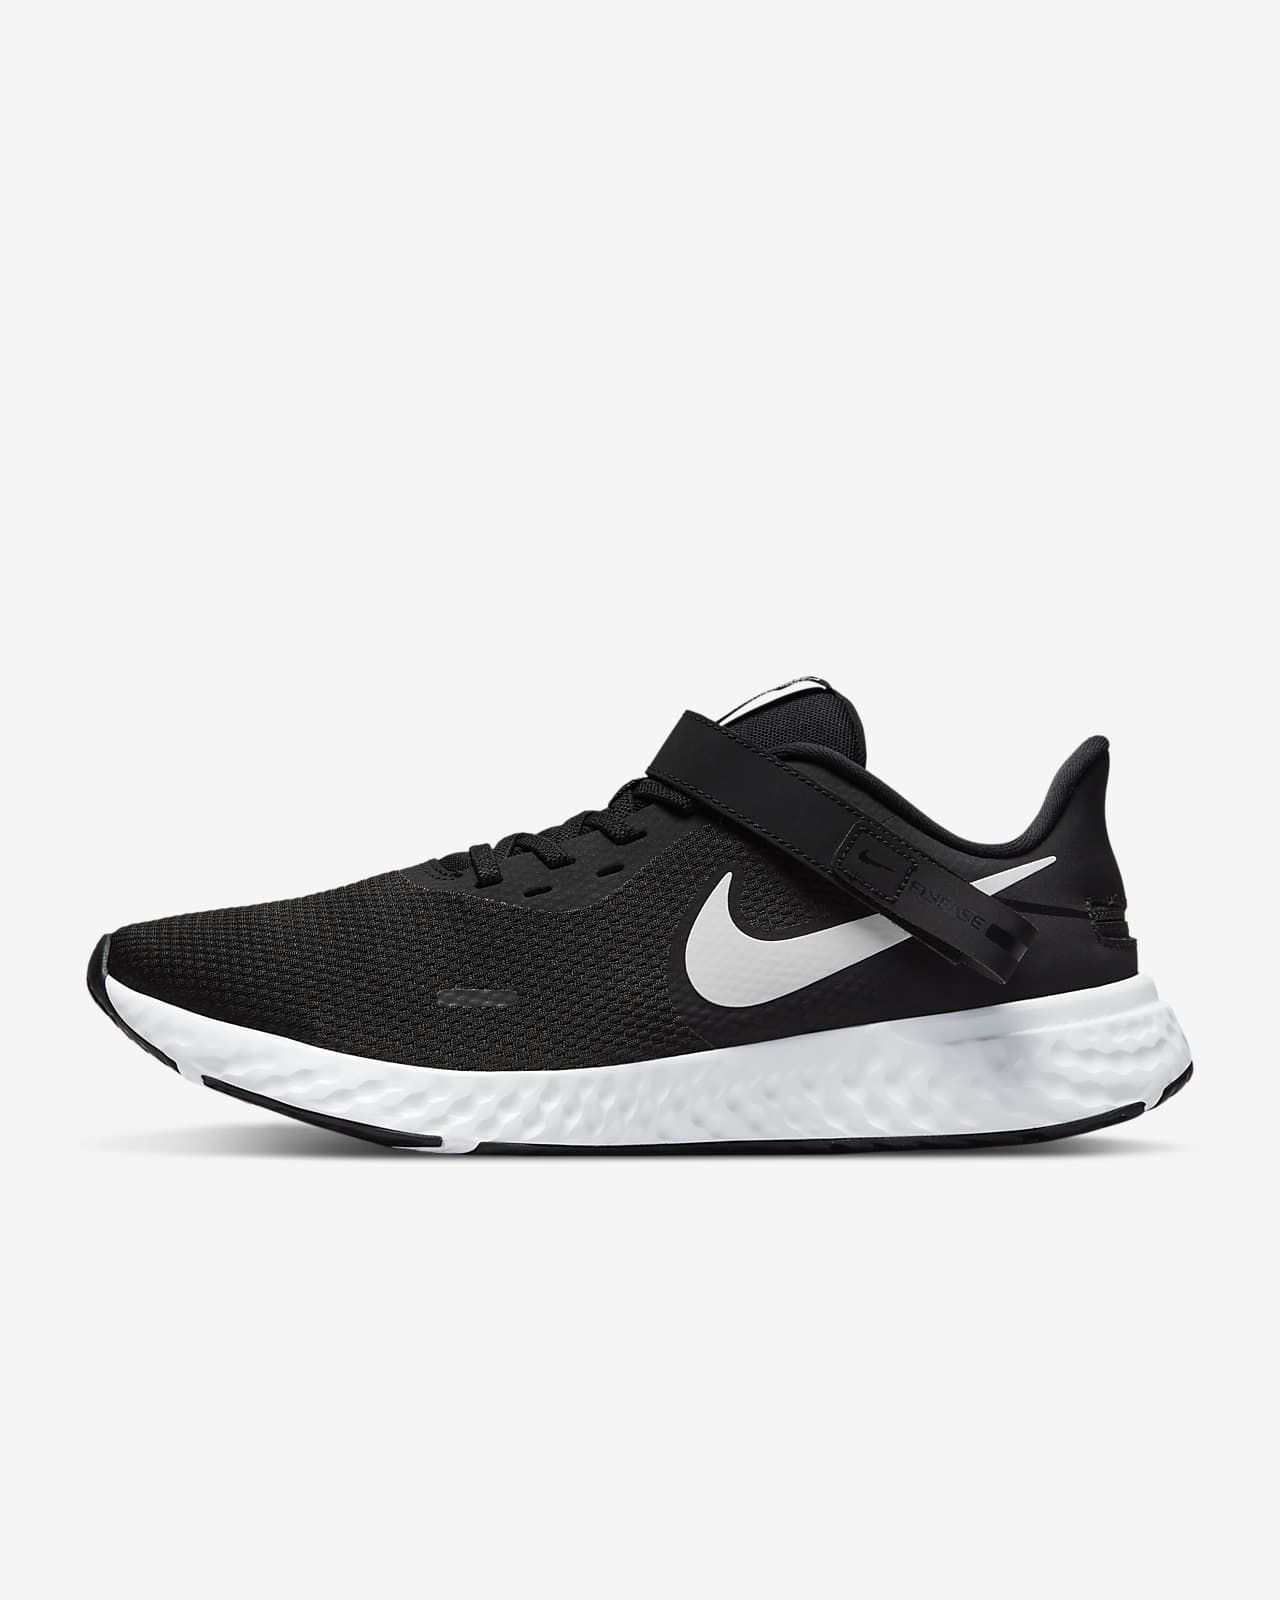 Nike Revolution 5 FlyEase Men's Easy On/Off Road Running Shoes